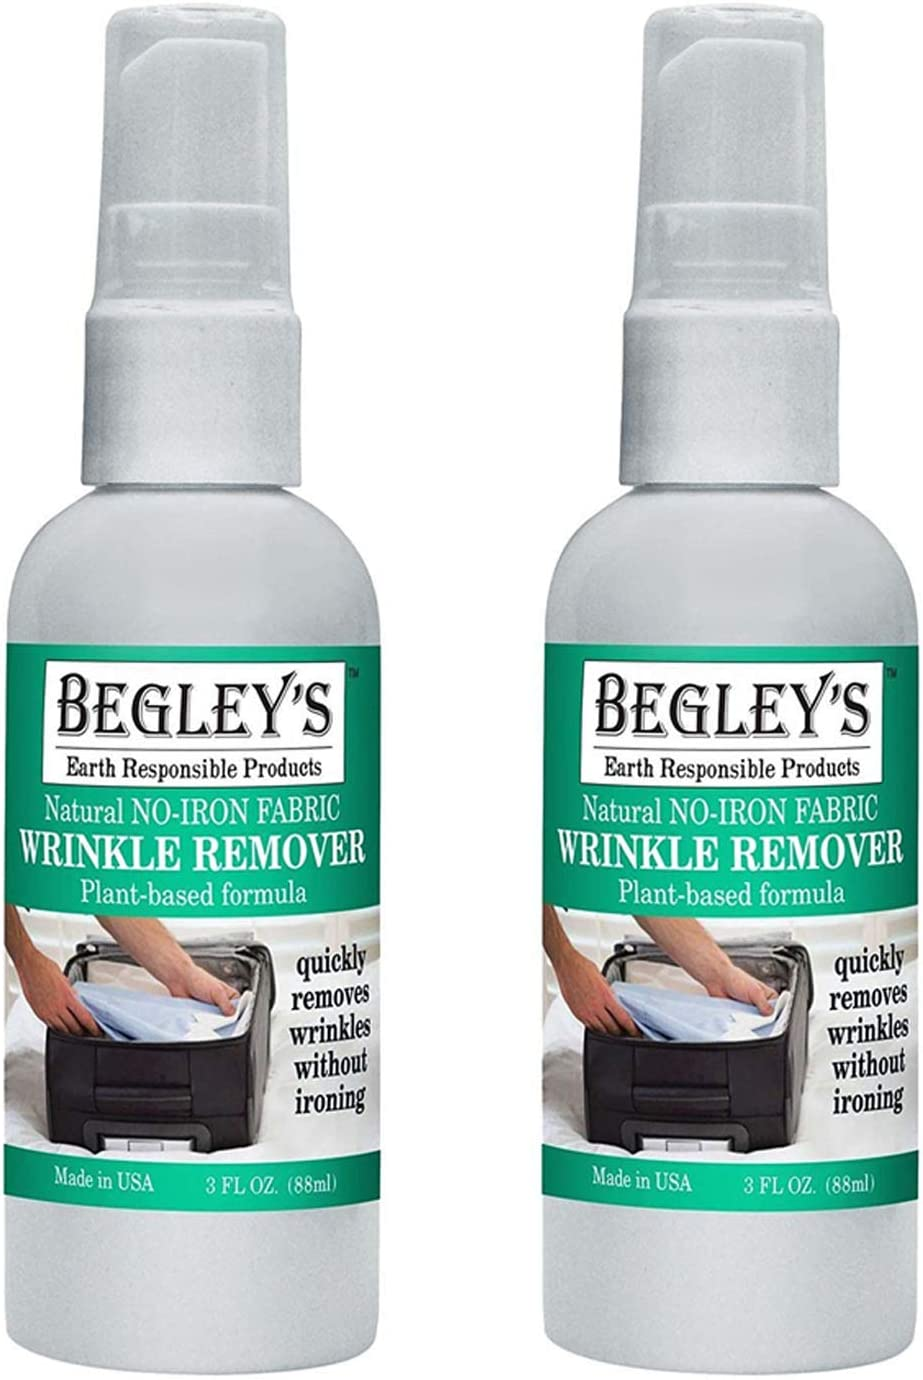 Begley's Best Natural No-Iron Wrinkle Remover, Quick Fix Wrinkle Release, Static Cling Remover, Fabric Freshener - Plant-Based Formula, USDA Certified Biobased - Refreshing Citrus, 3 oz Travel Size